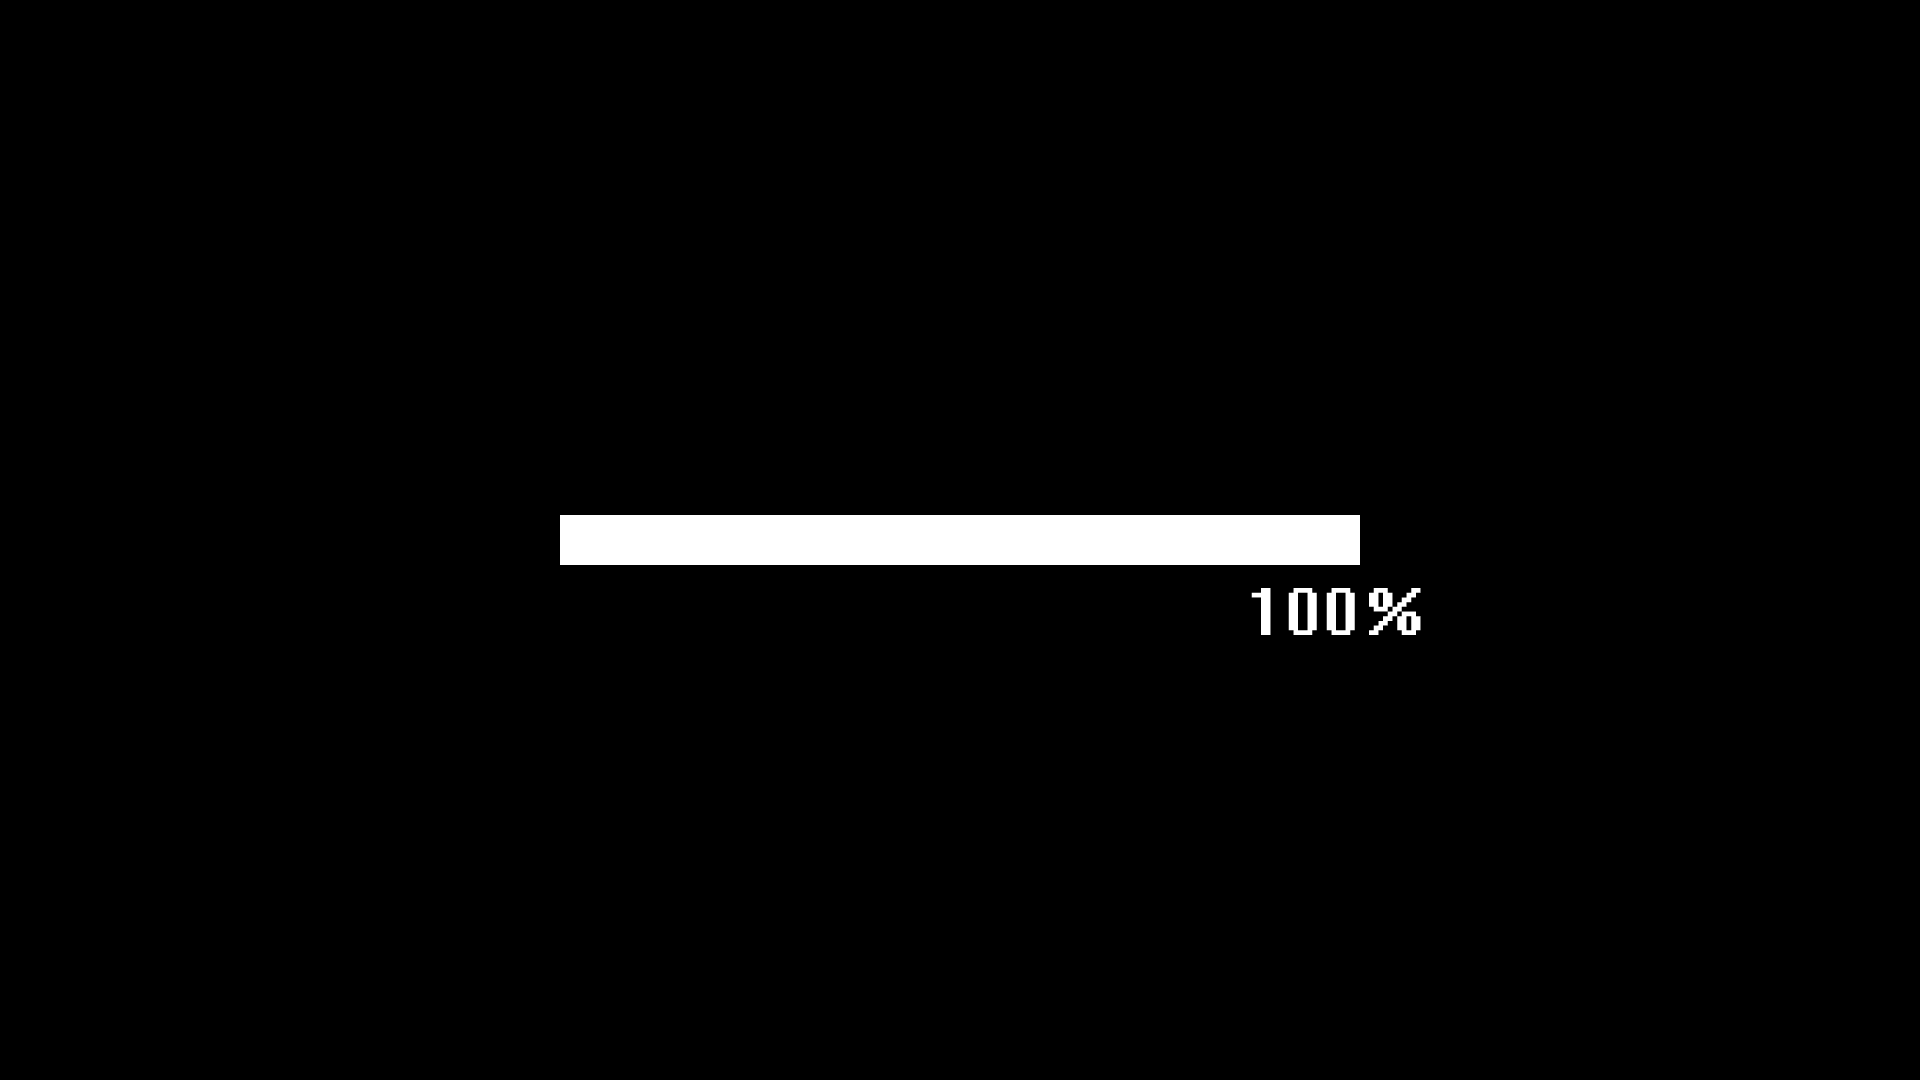 Free After Effects Project File Progress Bar Percentage